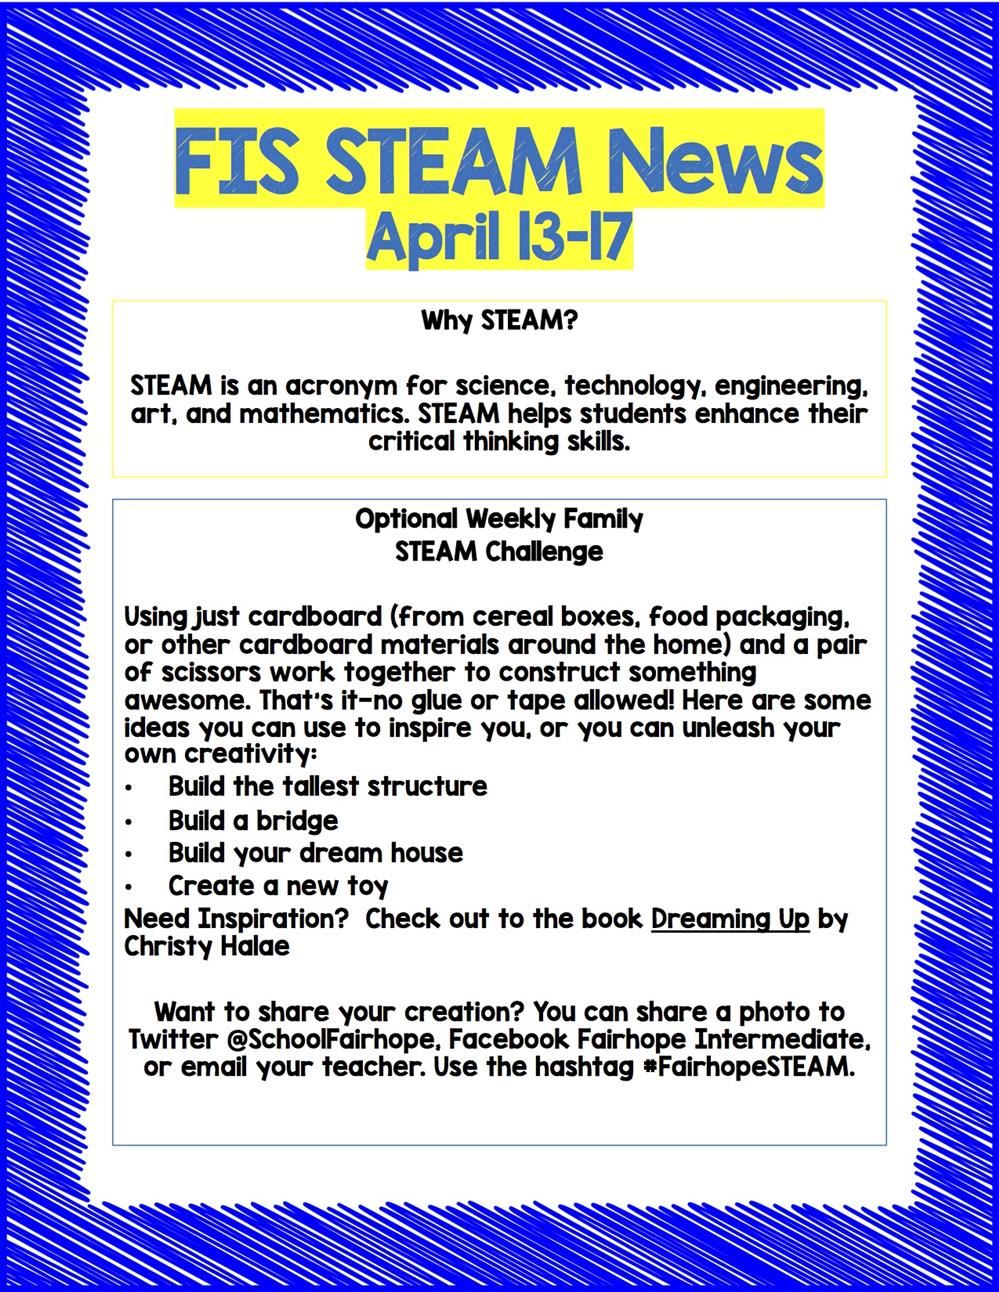 FIS STEAM NEWS 4.13